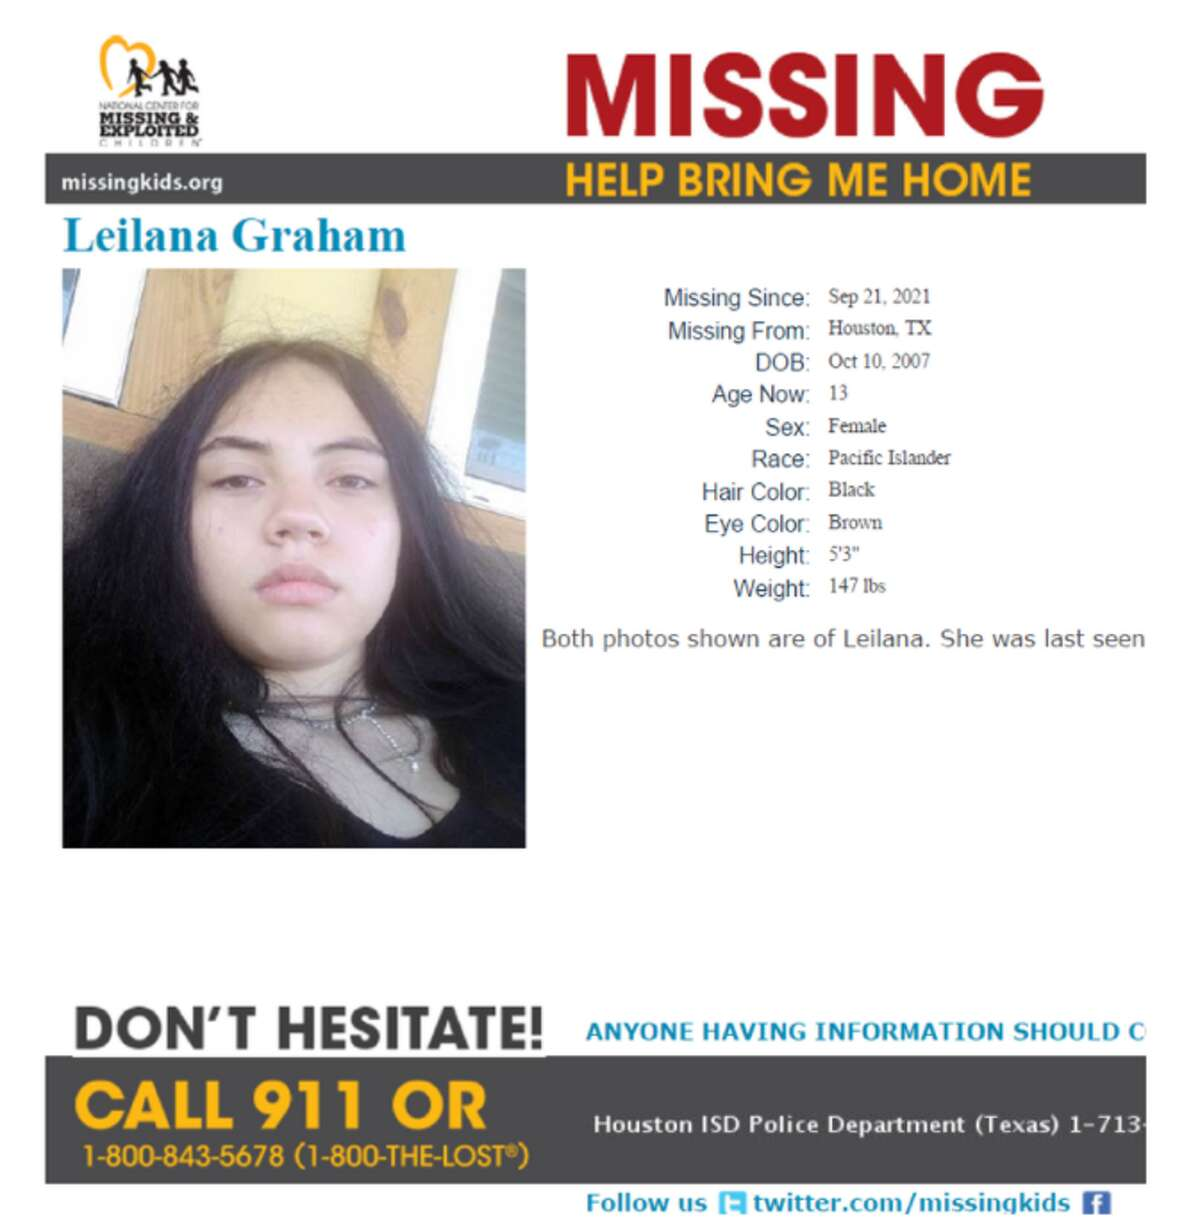 An Amber Alert was issued for 13-year-old Leilana Graham of Houston on Oct. 5, 2021.